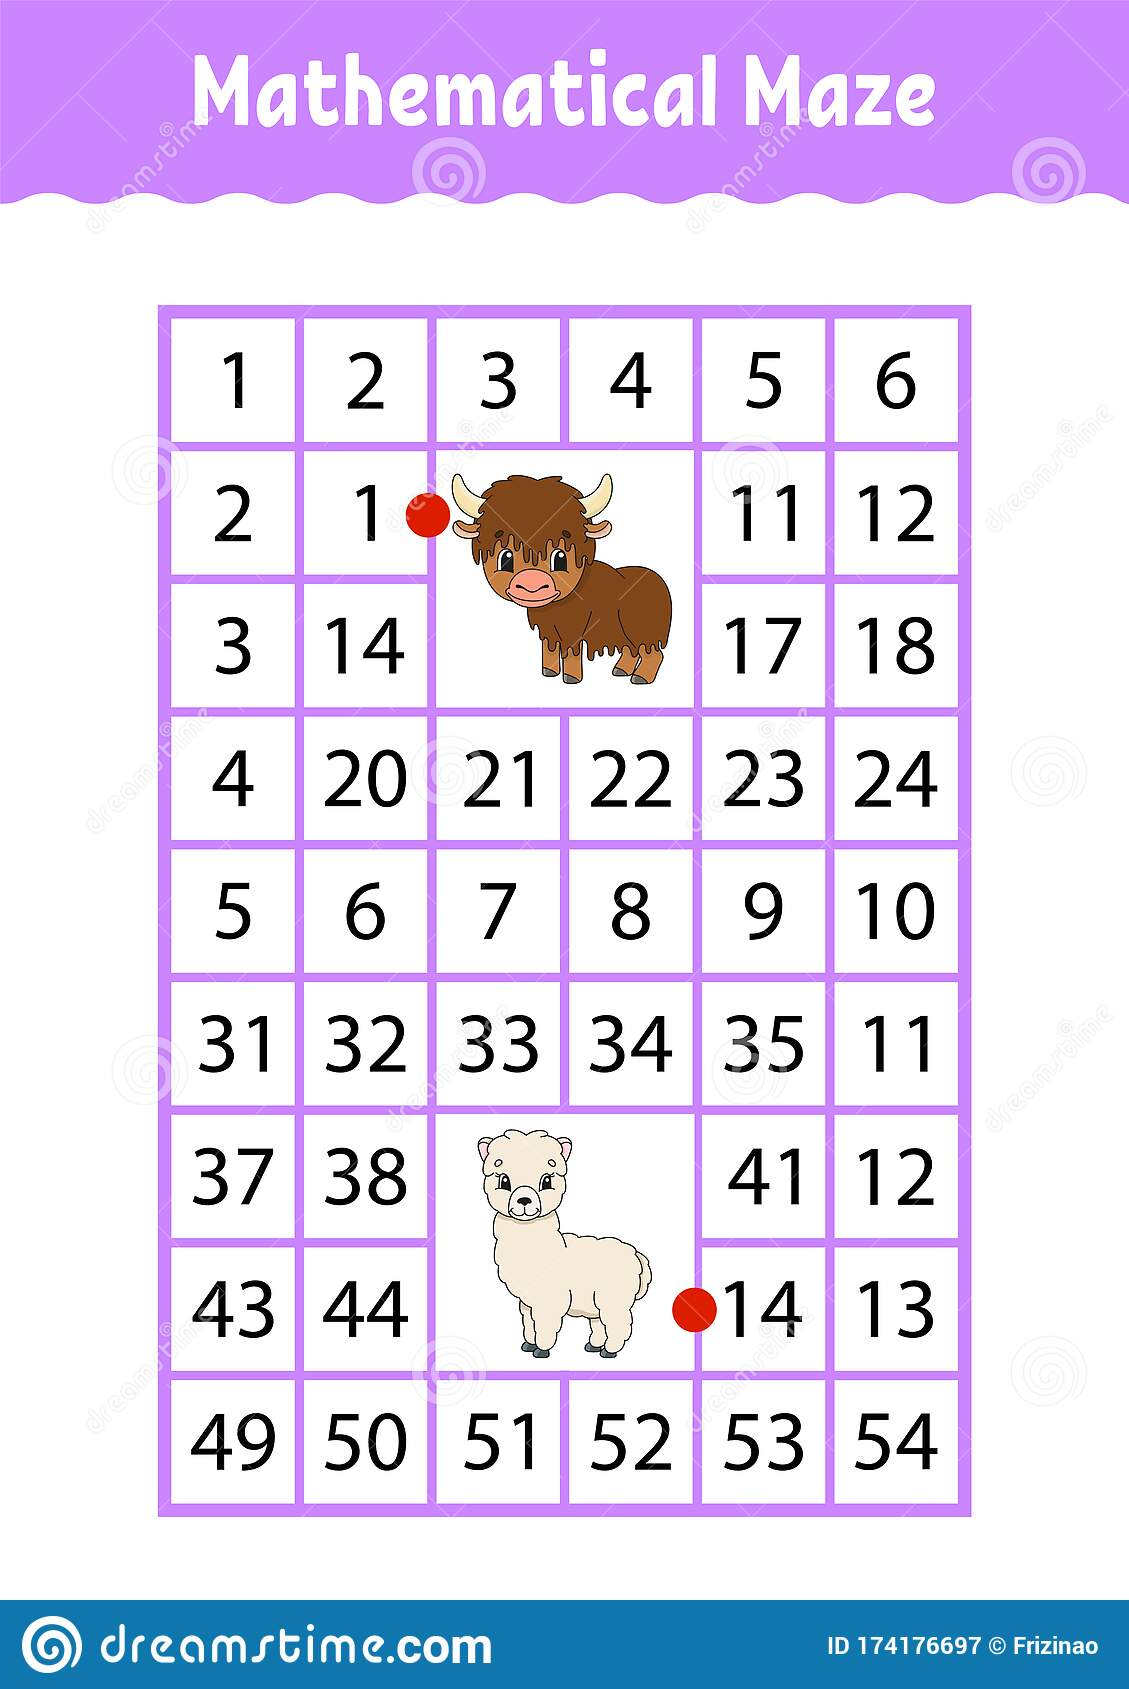 Mathematical Rectangle Maze Yak And Alpaca Game For Kids